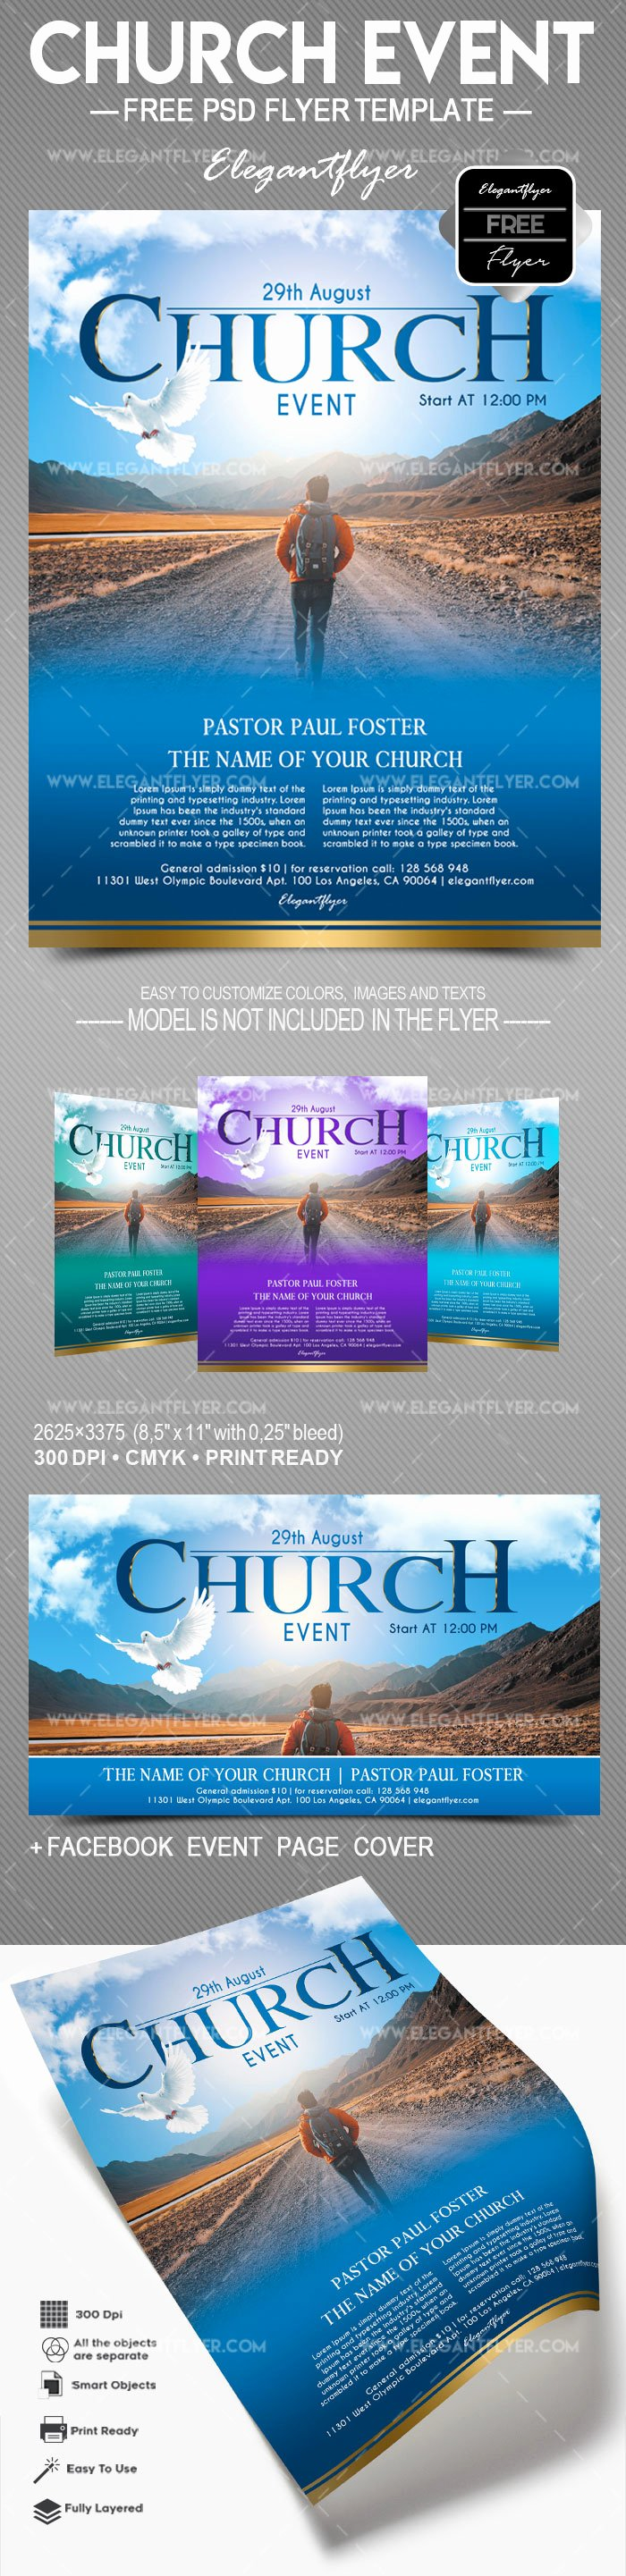 Free Church Flyer Templates Psd Best Of Church event – Free Flyer Psd Template – by Elegantflyer